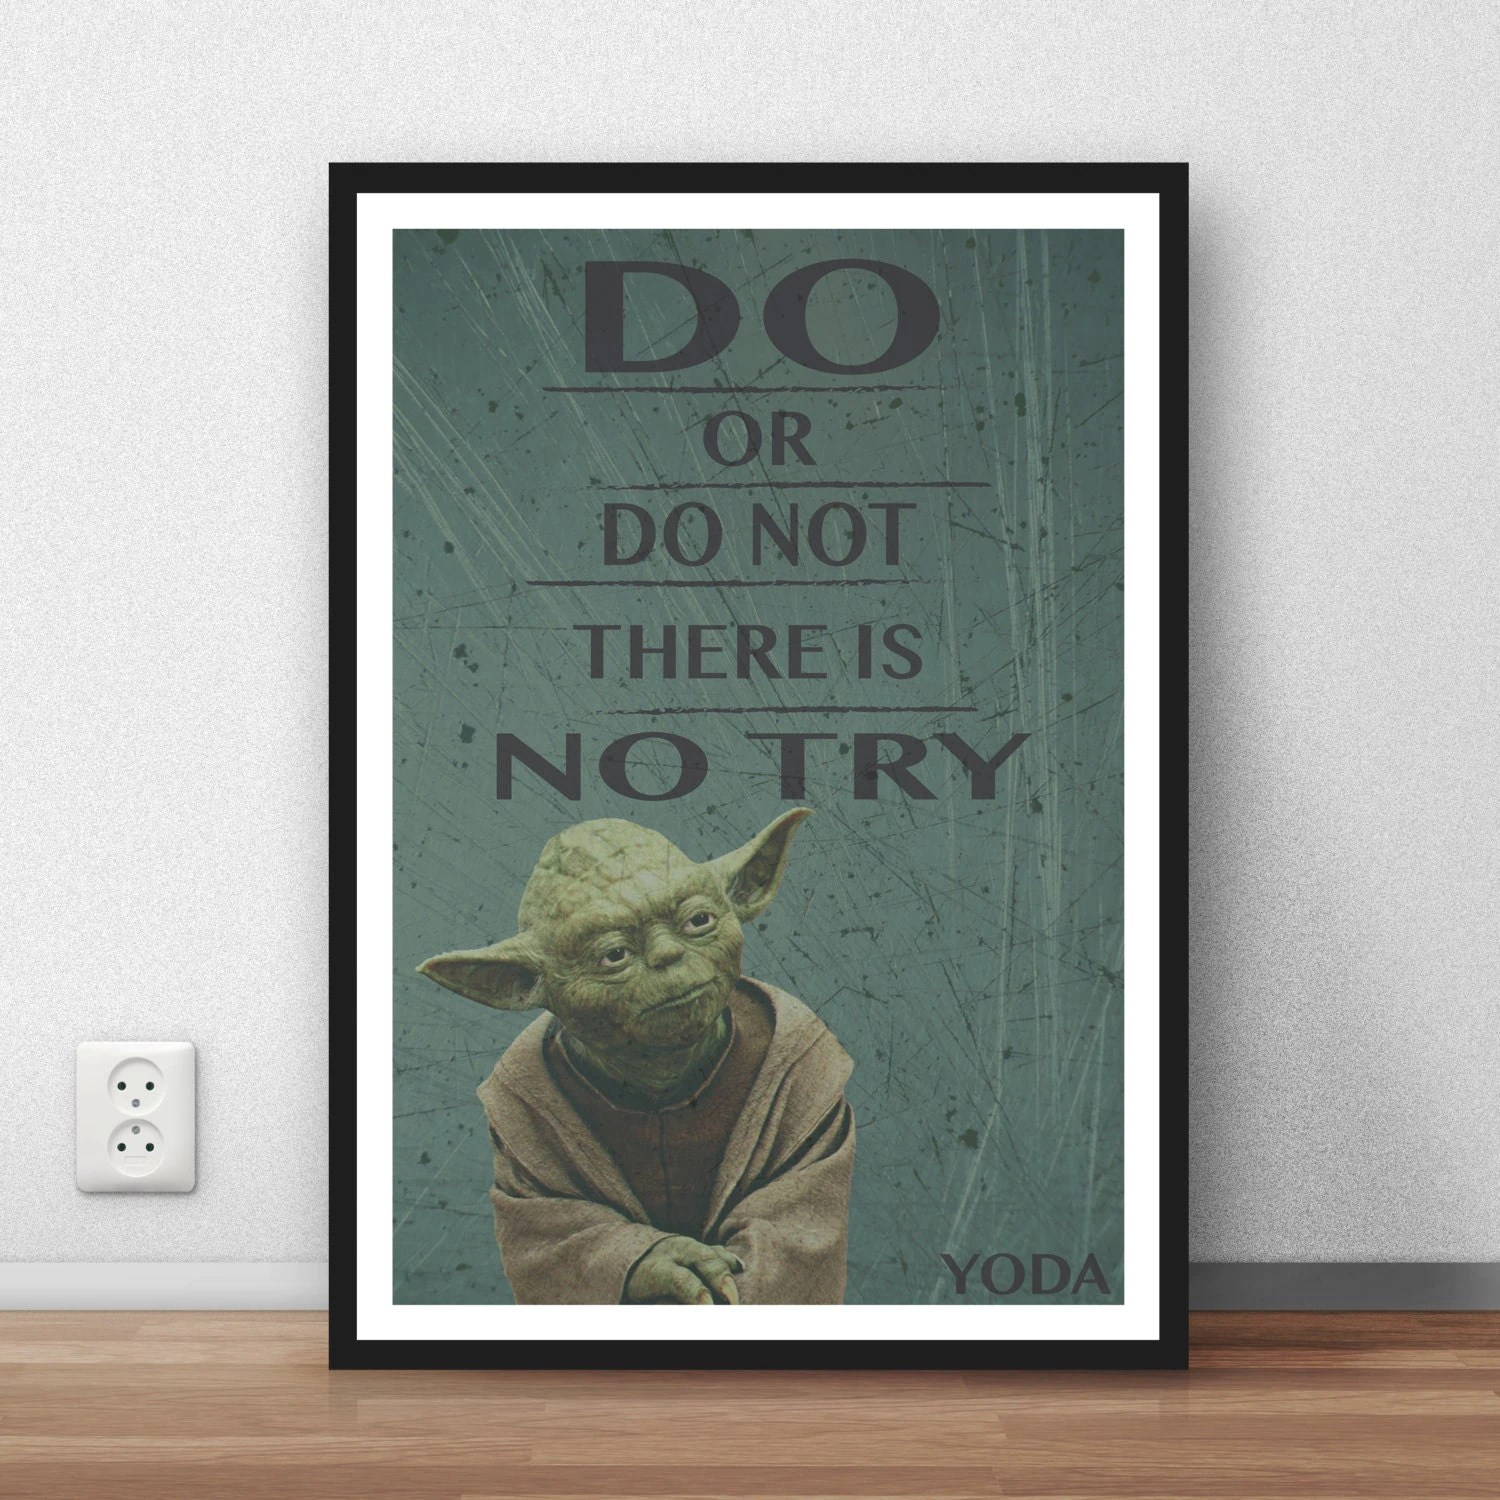 Yoda Quote Do Or Do Not There Is No Try Wall Art